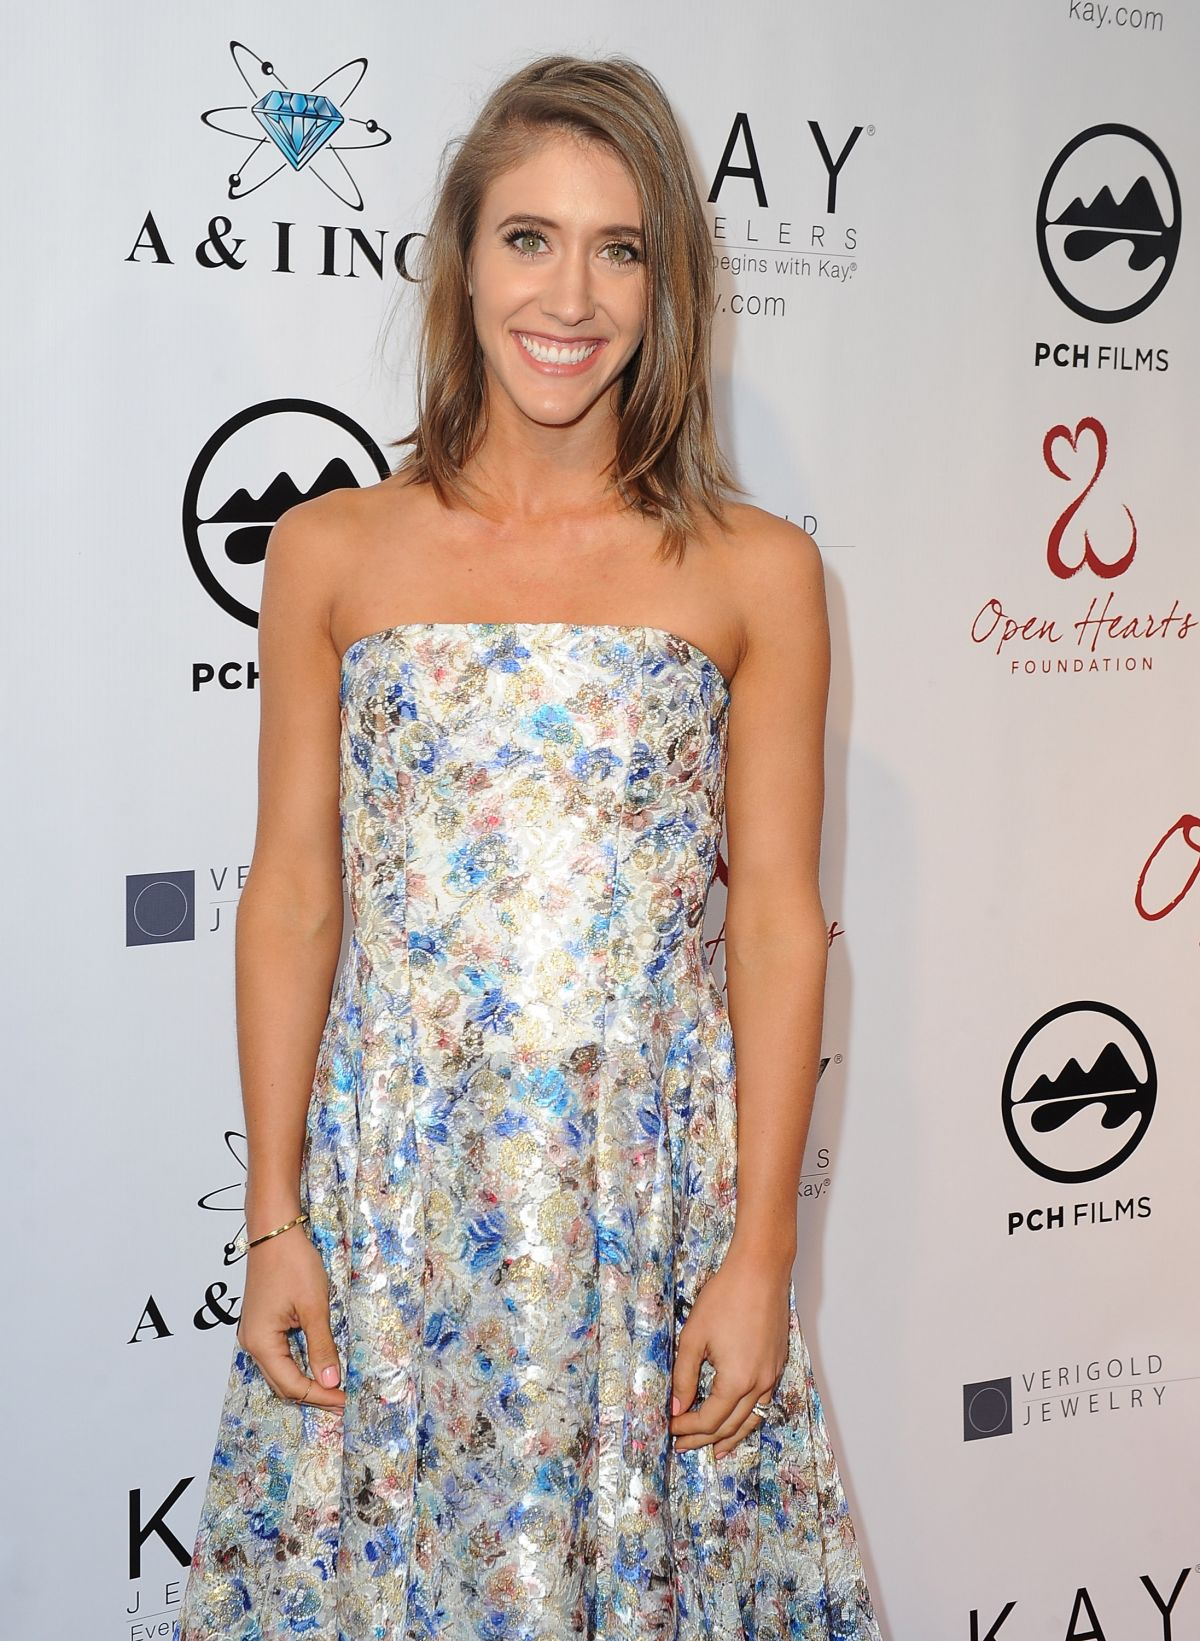 MOLLY THOMPSON at Open Hearts Foundation Gala in Malibu